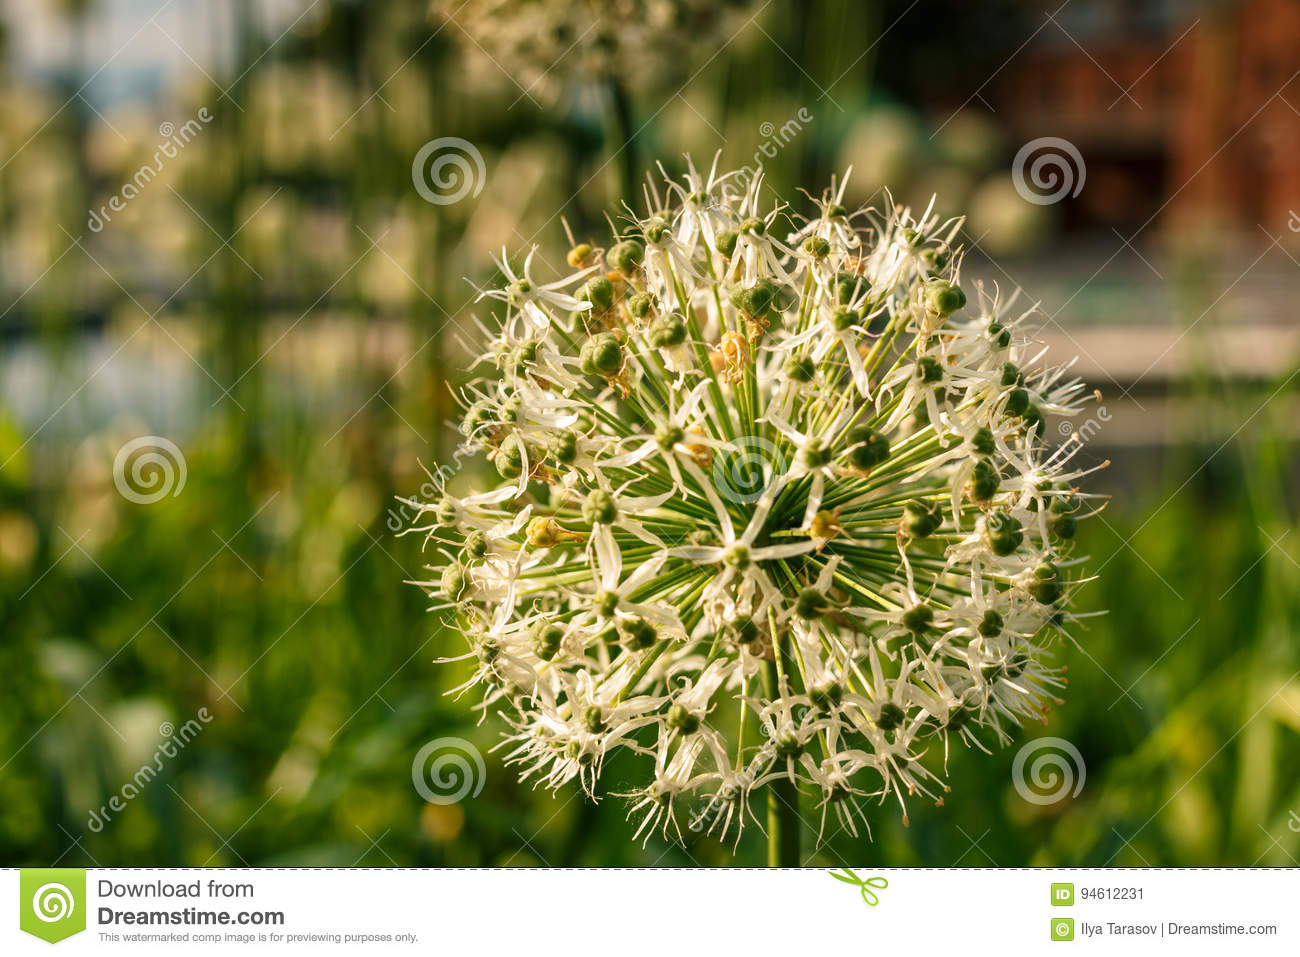 White green ball of a decorative flower stock image image of white green ball of a decorative flower a flower in the shape of a sphere on a green background beautiful white allium circular globe shaped flowers blow mightylinksfo